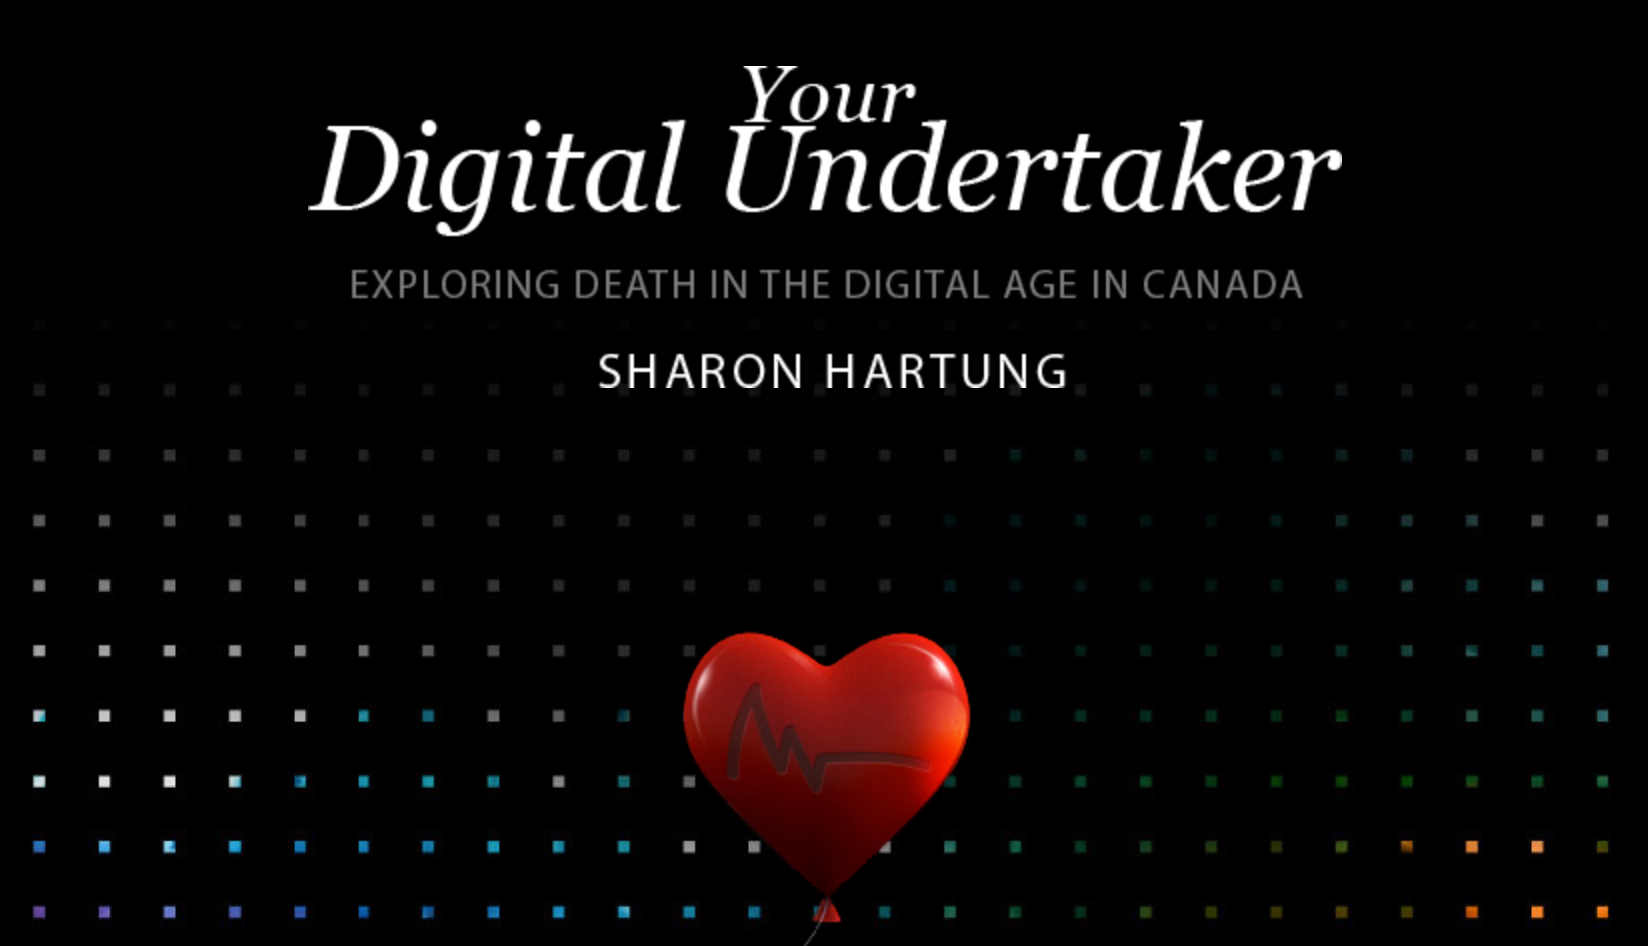 Image from Your Digital Undertaker site